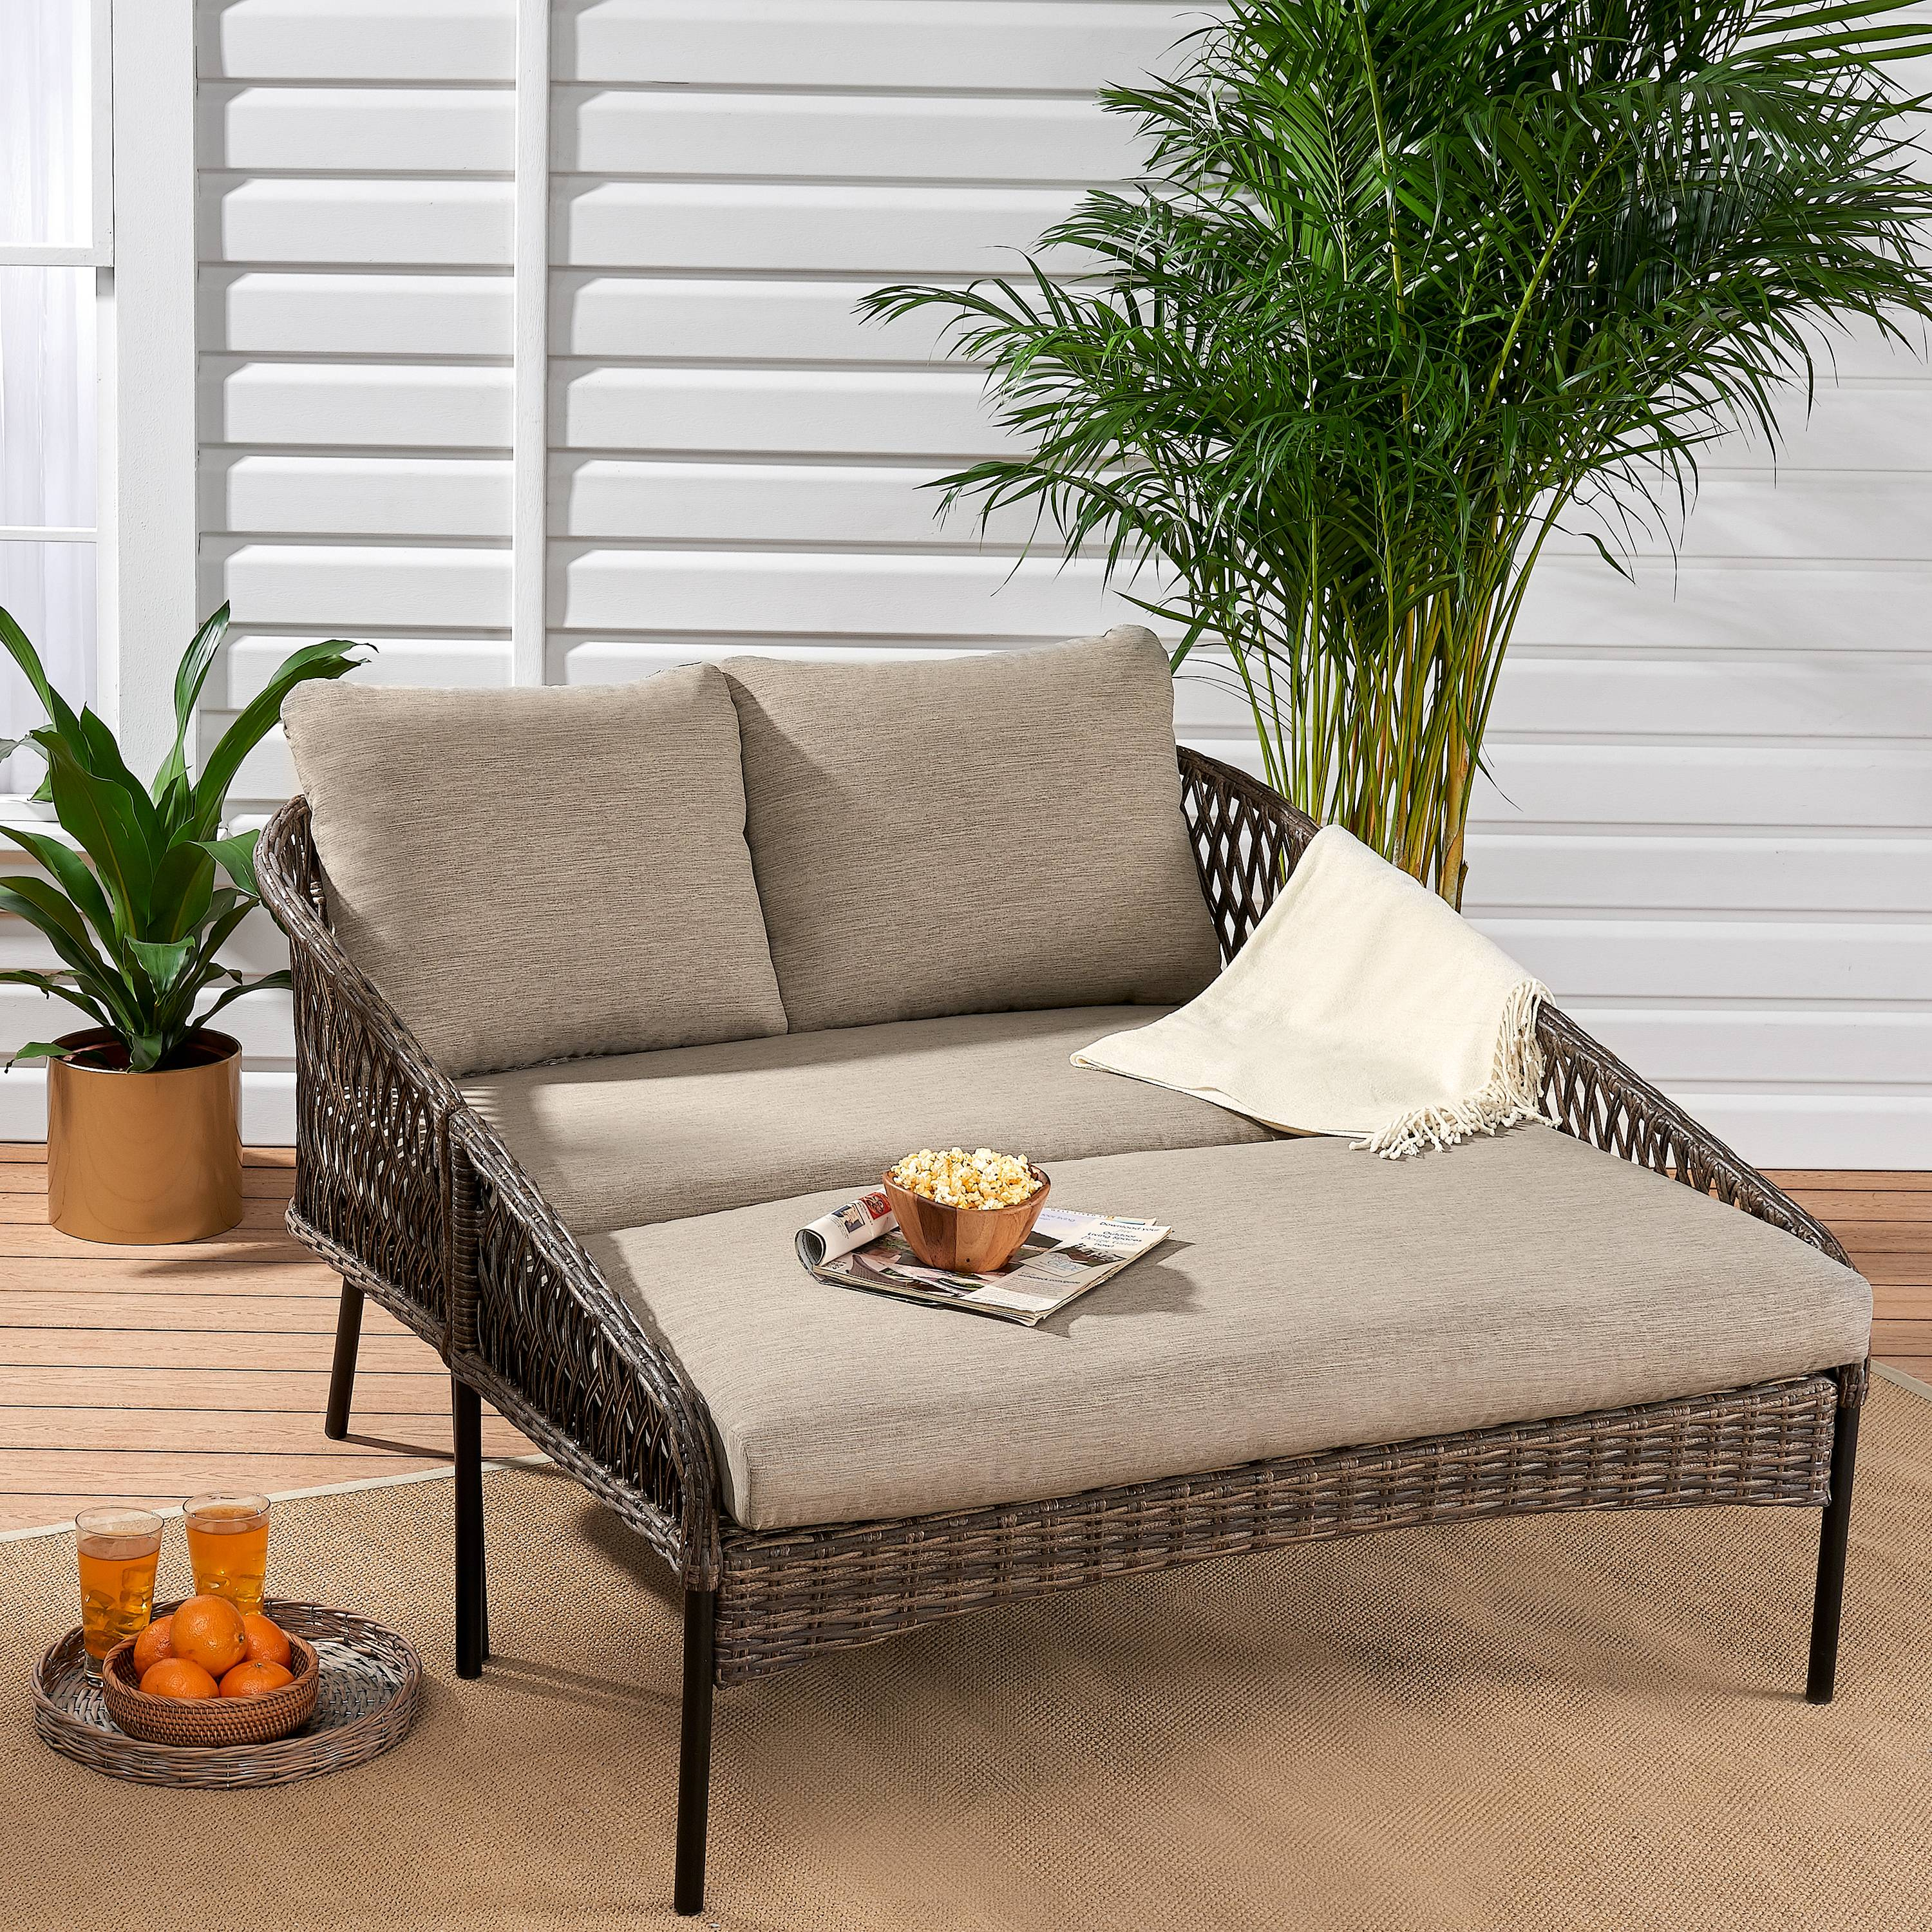 Mainstays Battle Creek Patio Wicker Daybed with Taupe/Gray Cushions